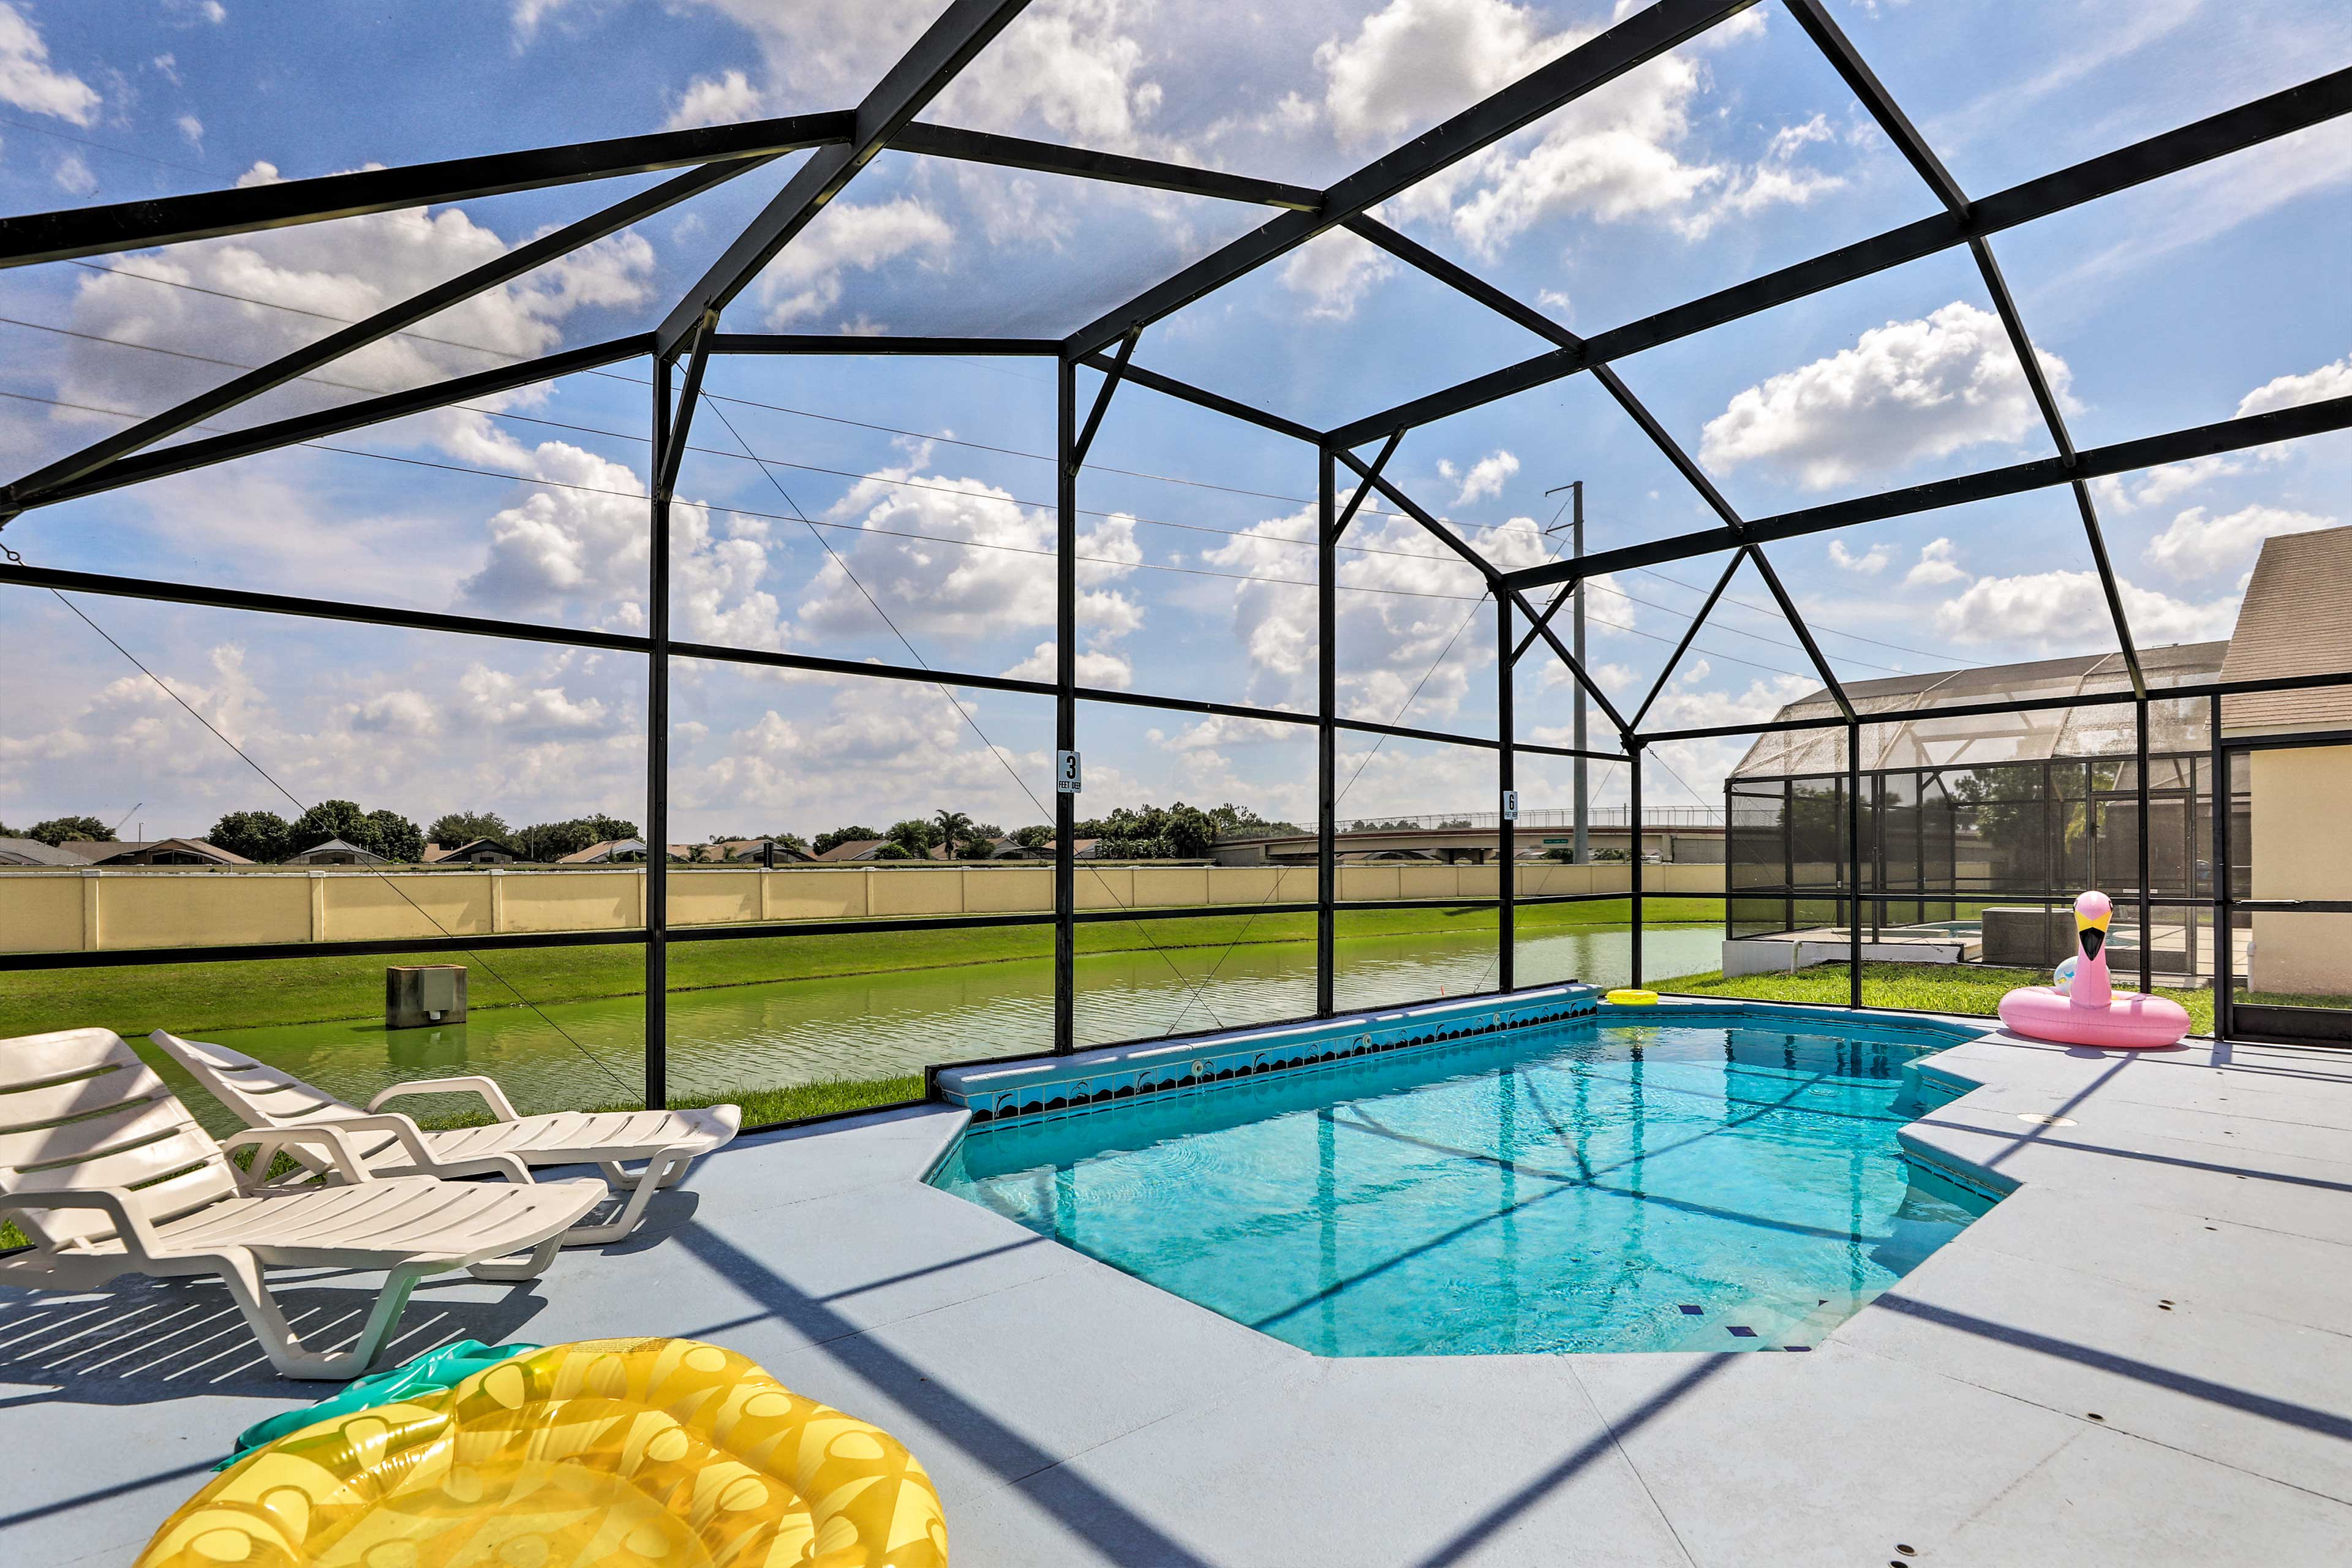 Enjoy your stay at this 4-bed, 3-bath vacation rental with a screened-in pool.